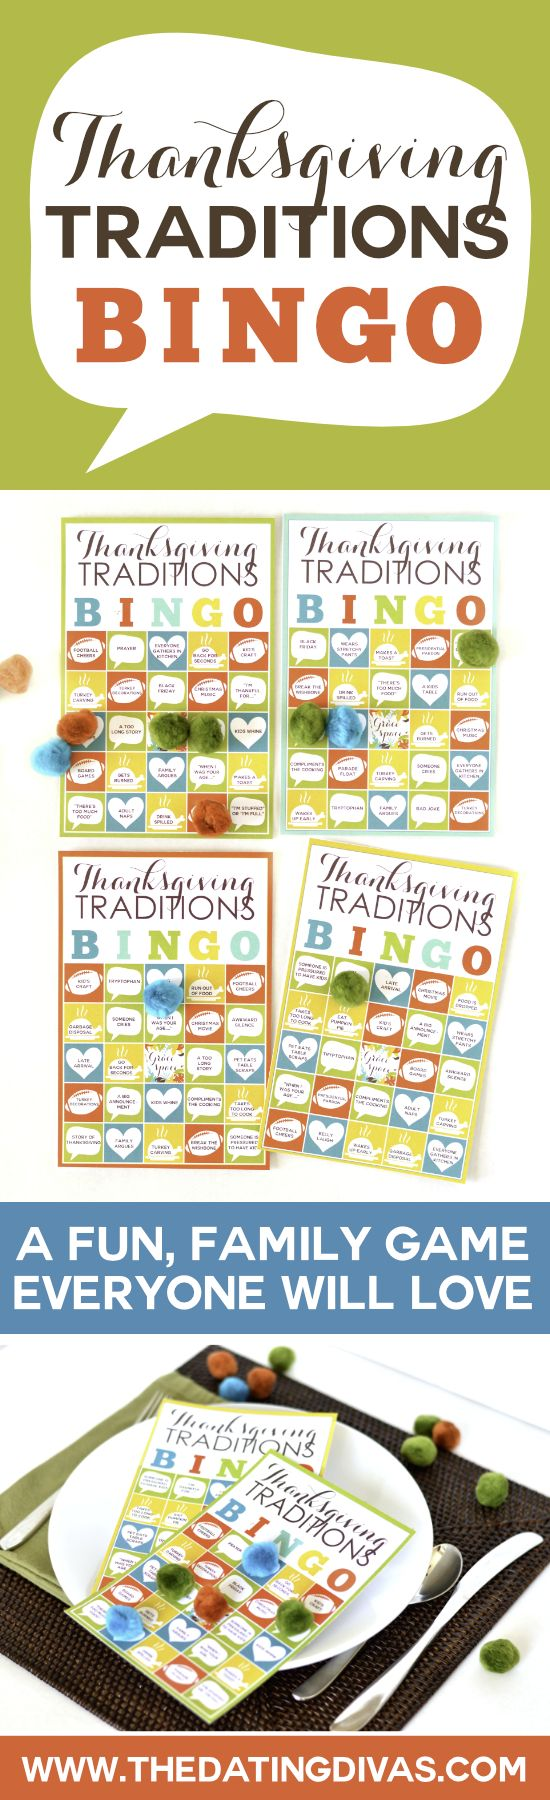 599 best images about thanksgiving on pinterest Fun family thanksgiving games